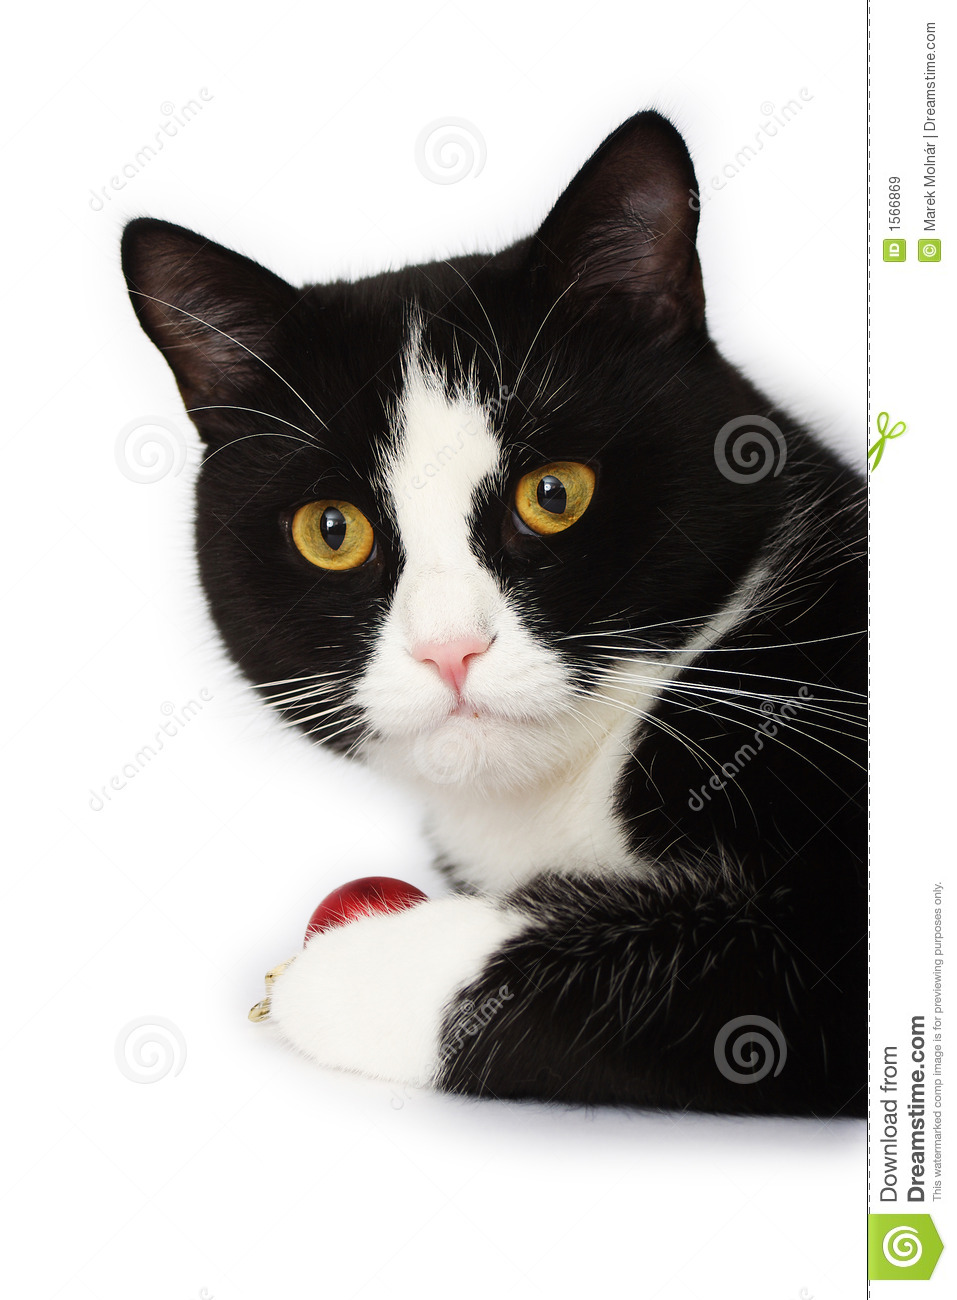 Black And White Cat Royalty Free Stock Images - Image: 1566869